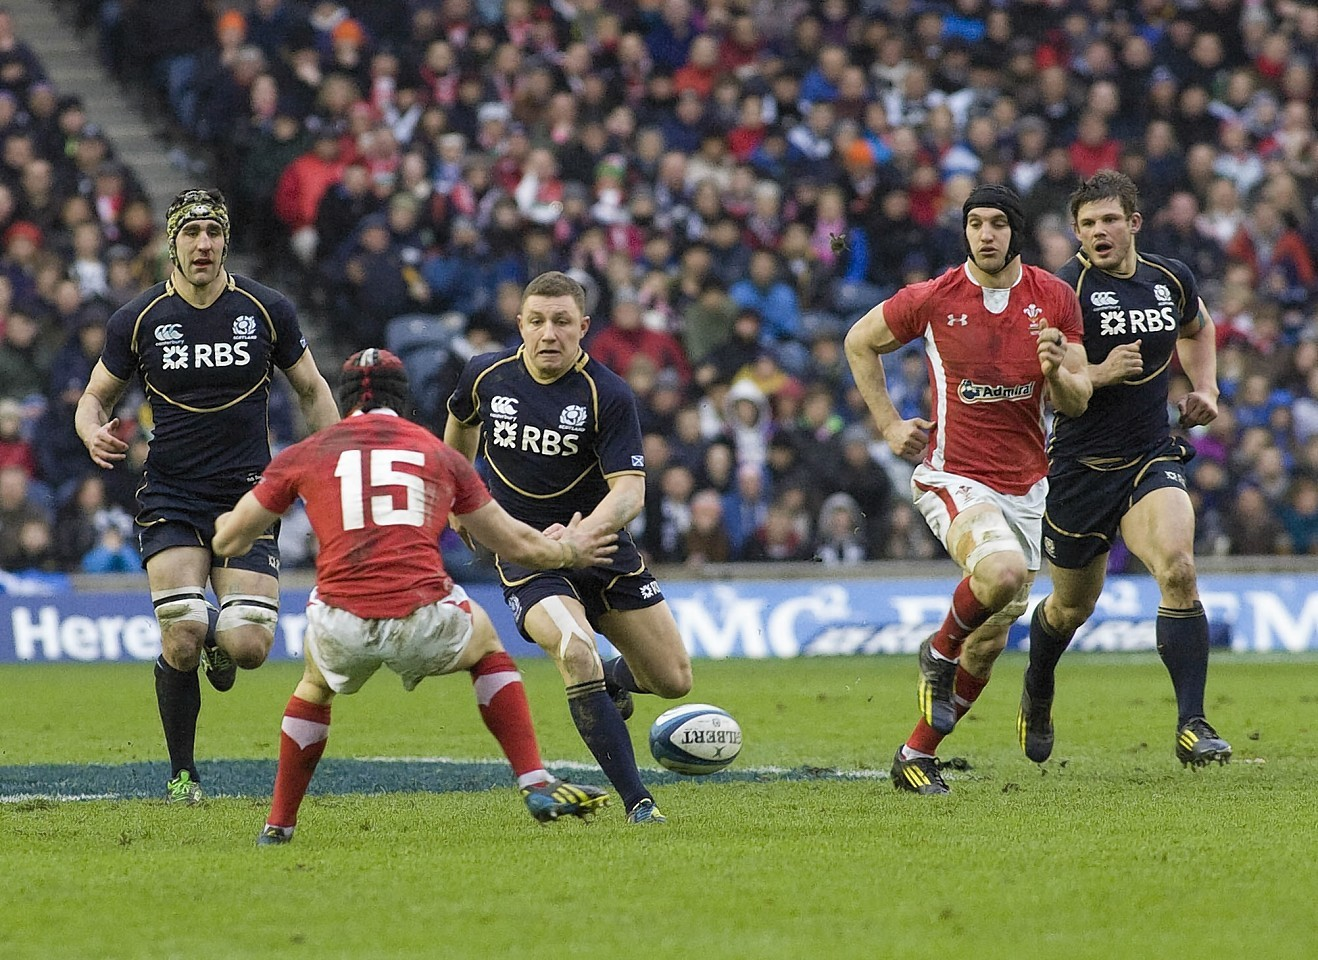 Wales during a clash with Scotland